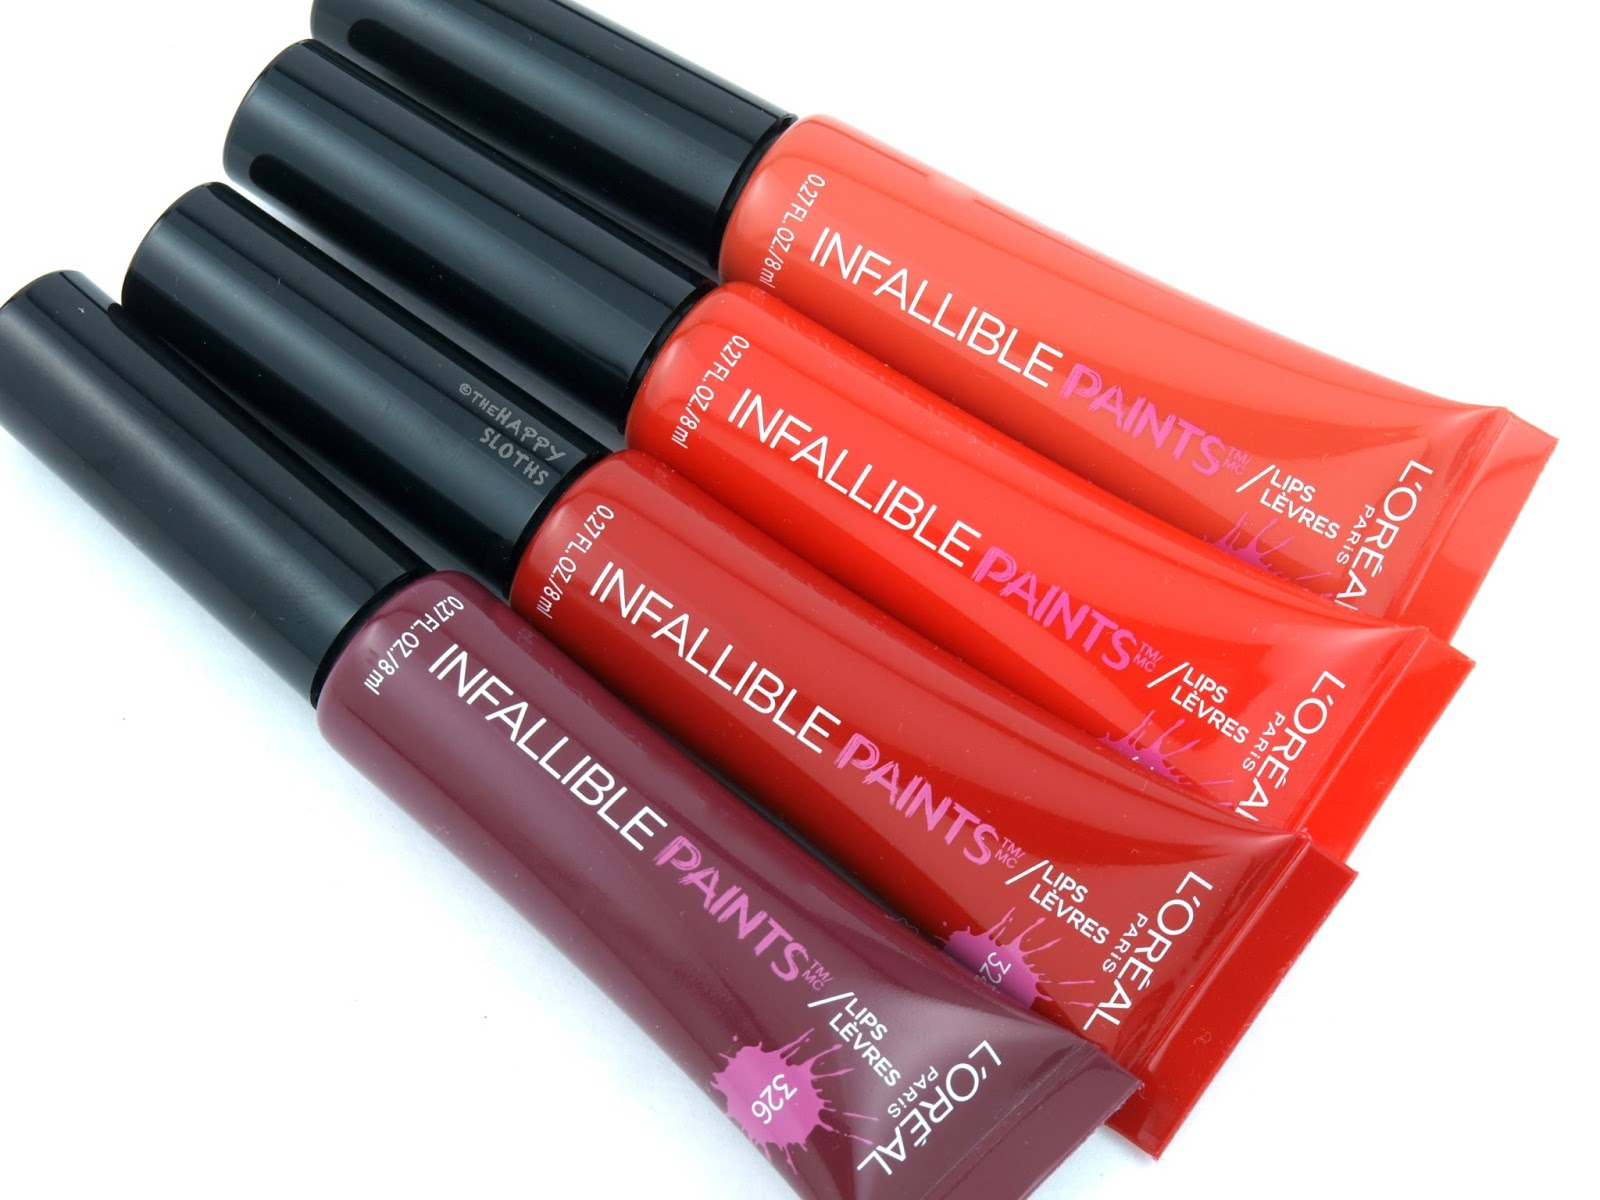 Loreal Infallible Paints Lips Liquid Lipstick Review And Swatches Torch Tshirt Women Pink Fuchsia L In 318 Fearless